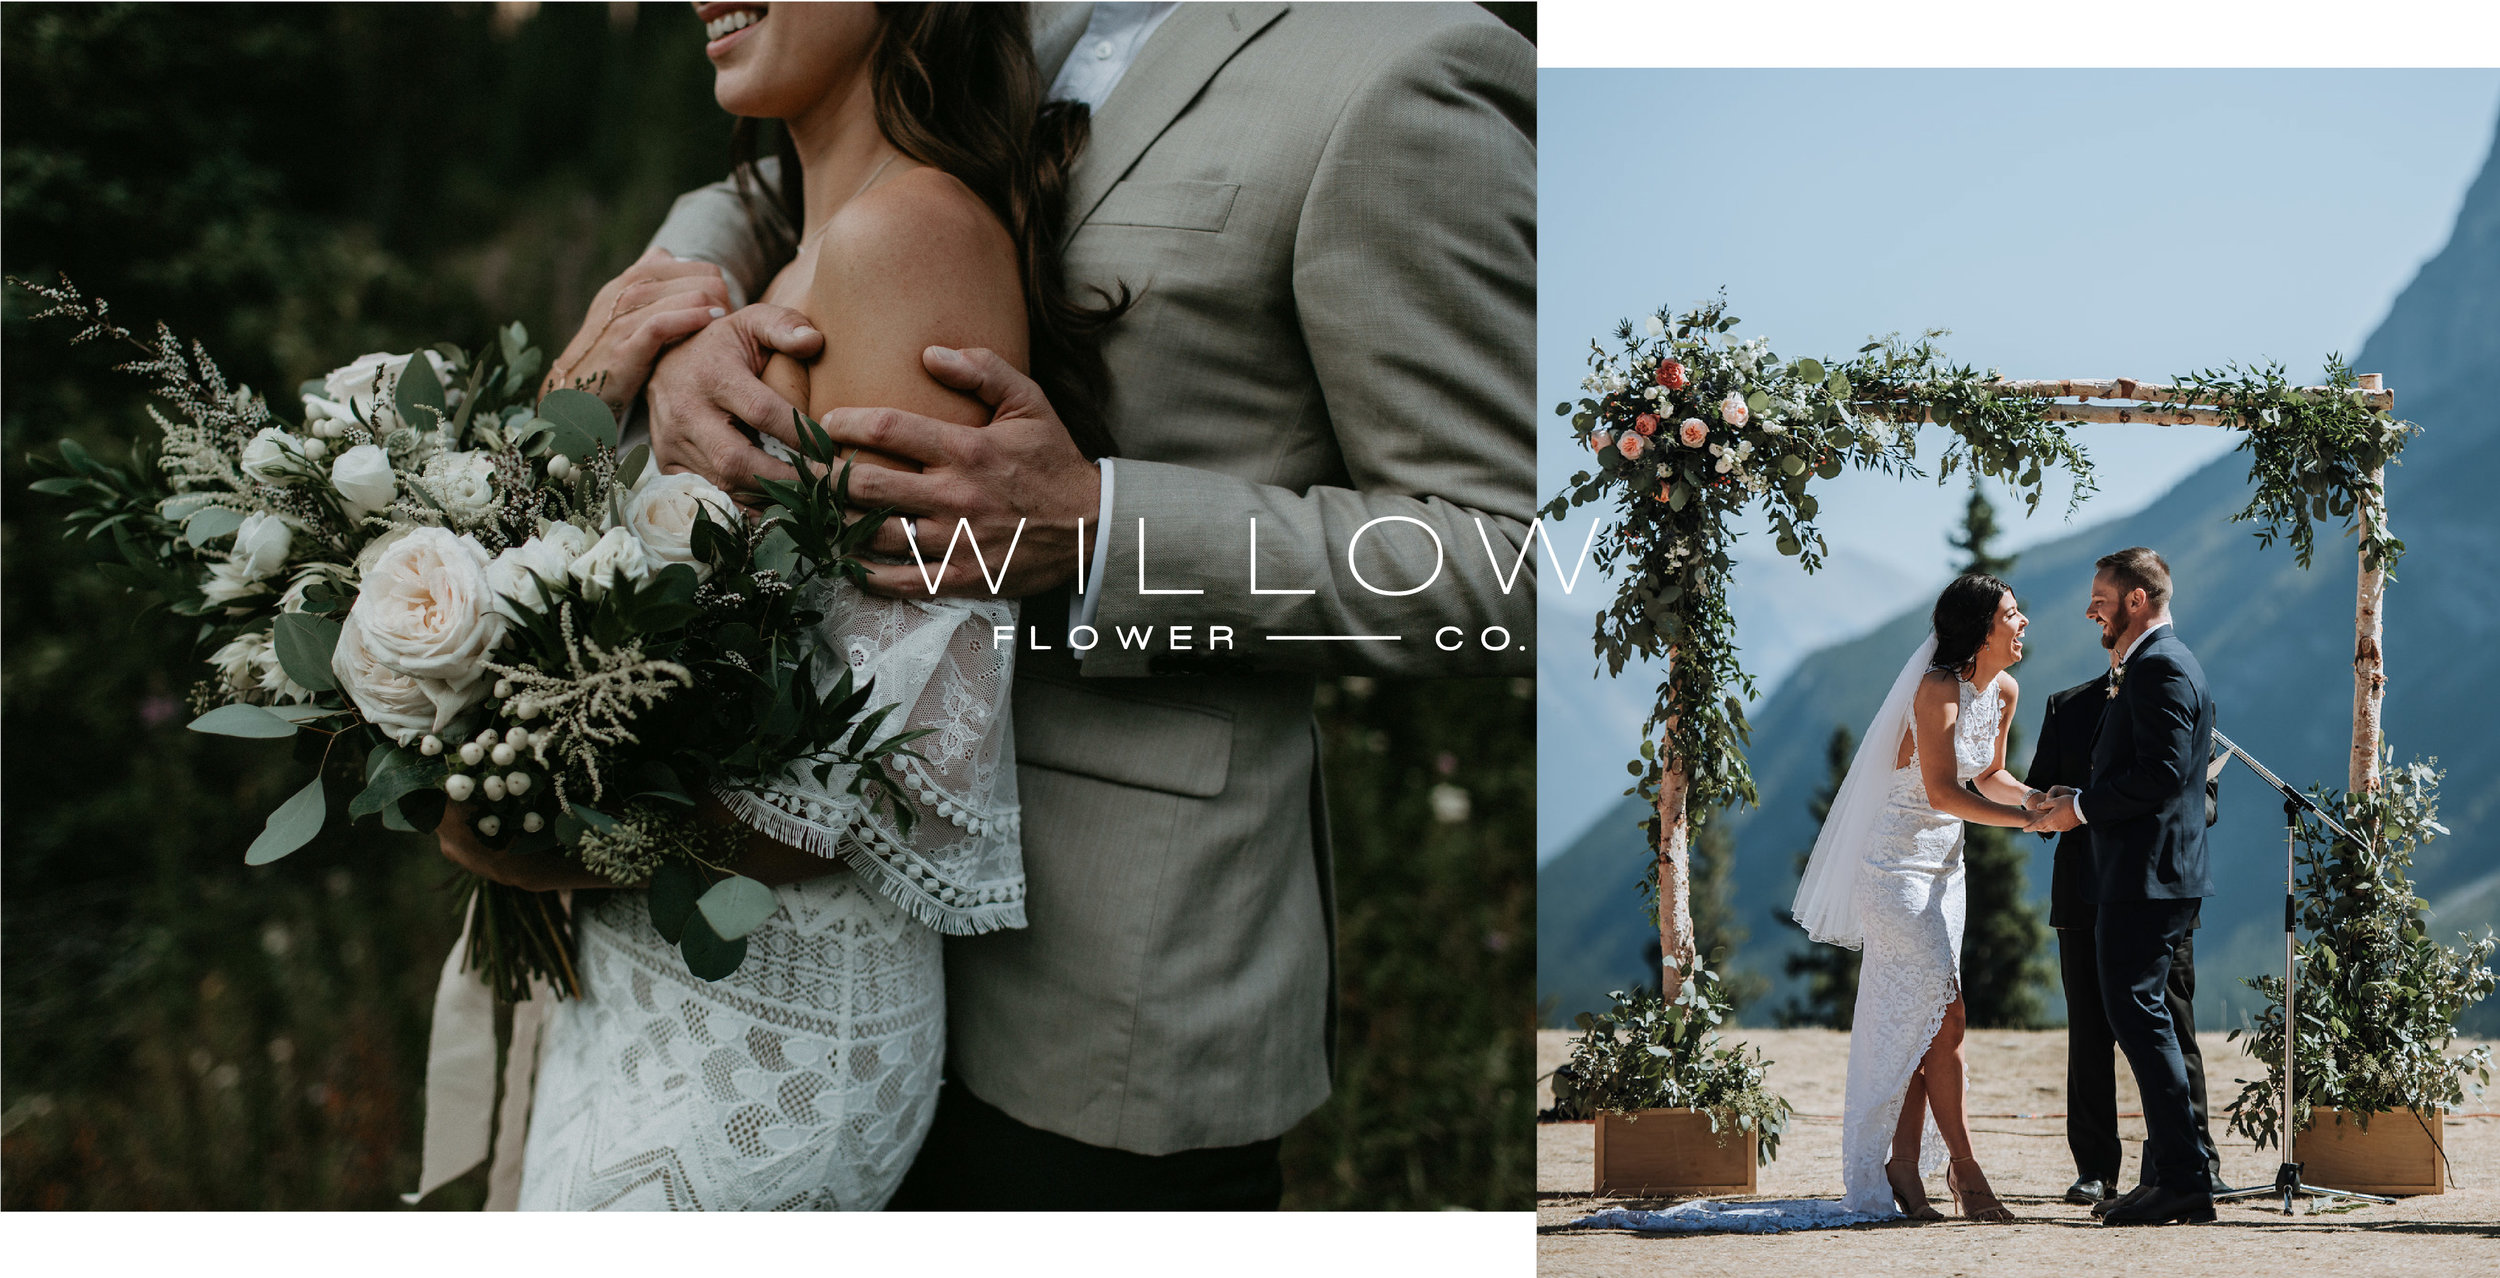 willow-flower-co-canmore-wedding-flowers